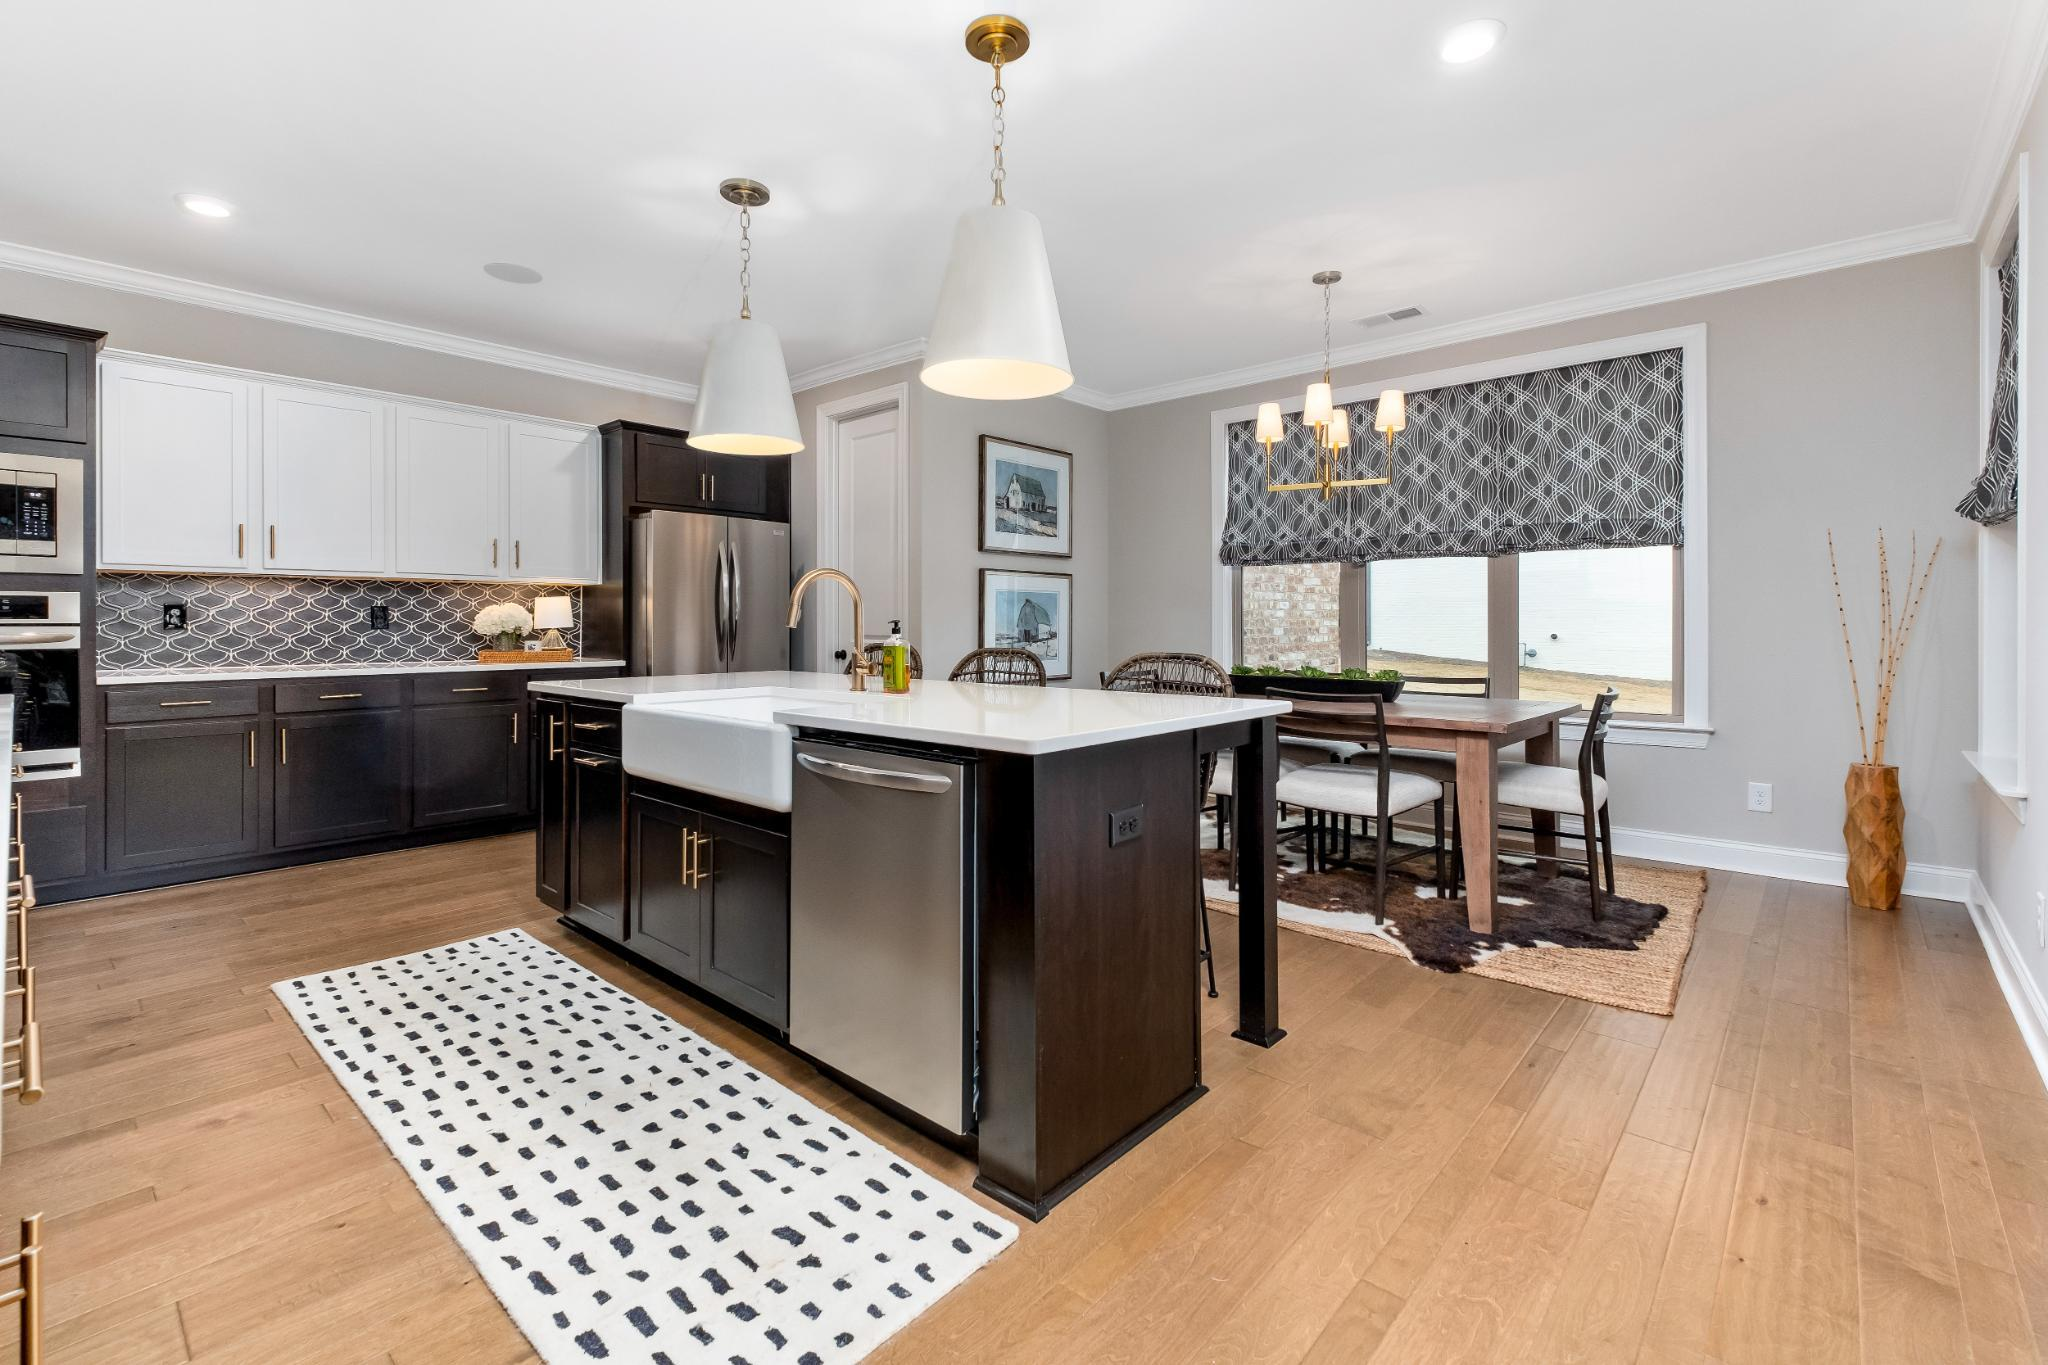 Kitchen featured in the Rosemont By Harris Doyle Homes Inc in Birmingham, AL